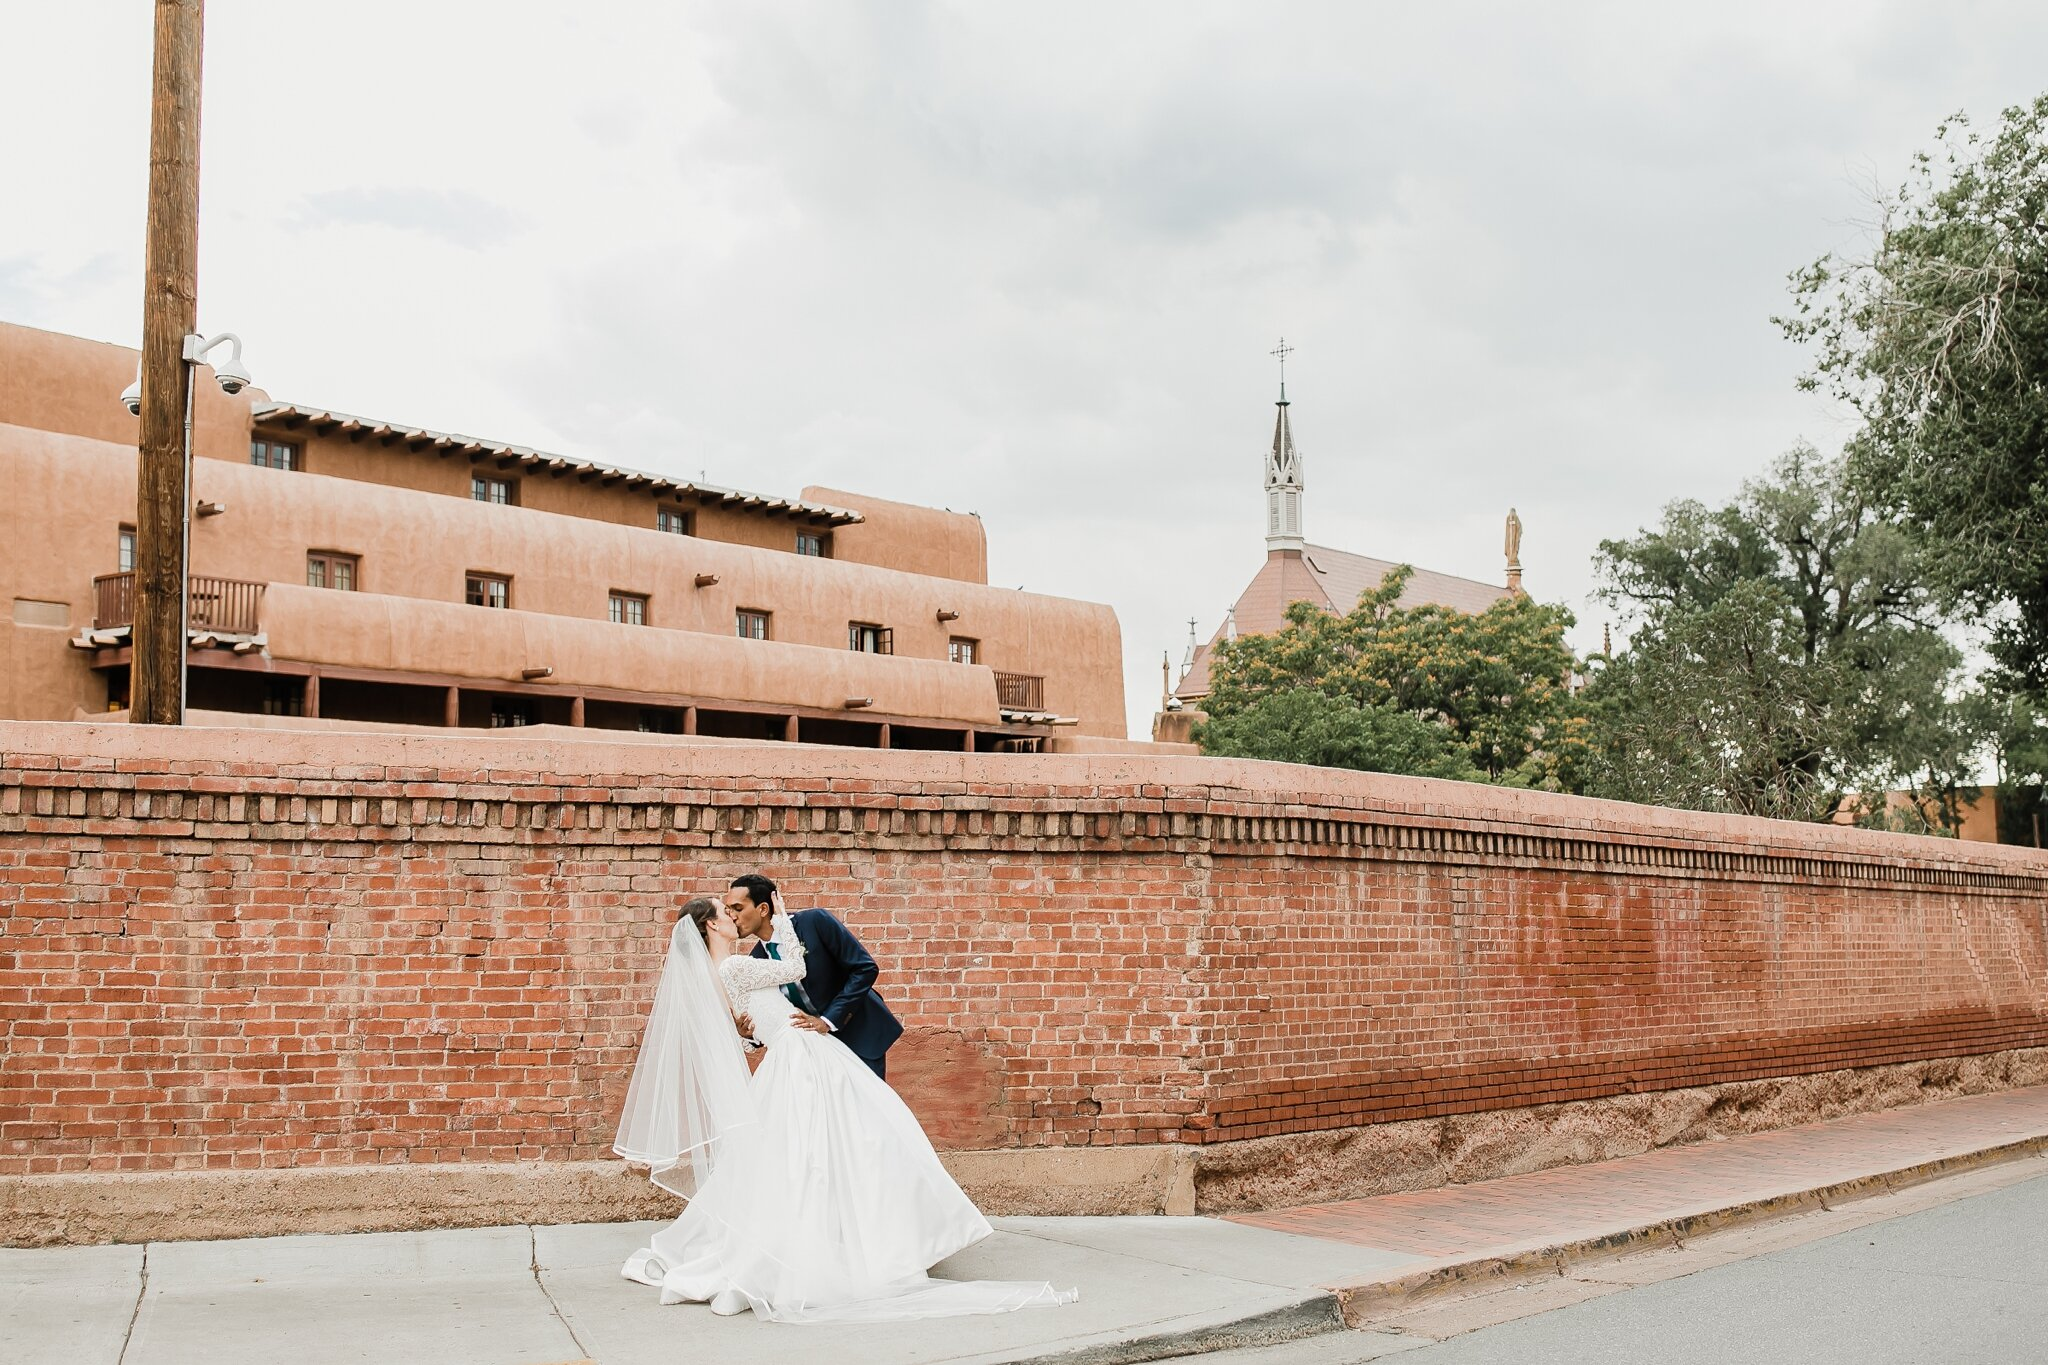 Alicia+lucia+photography+-+albuquerque+wedding+photographer+-+santa+fe+wedding+photography+-+new+mexico+wedding+photographer+-+new+mexico+wedding+-+hindu+wedding+-+catholic+wedding+-+multicultural+wedding+-+santa+fe+wedding_0092.jpg